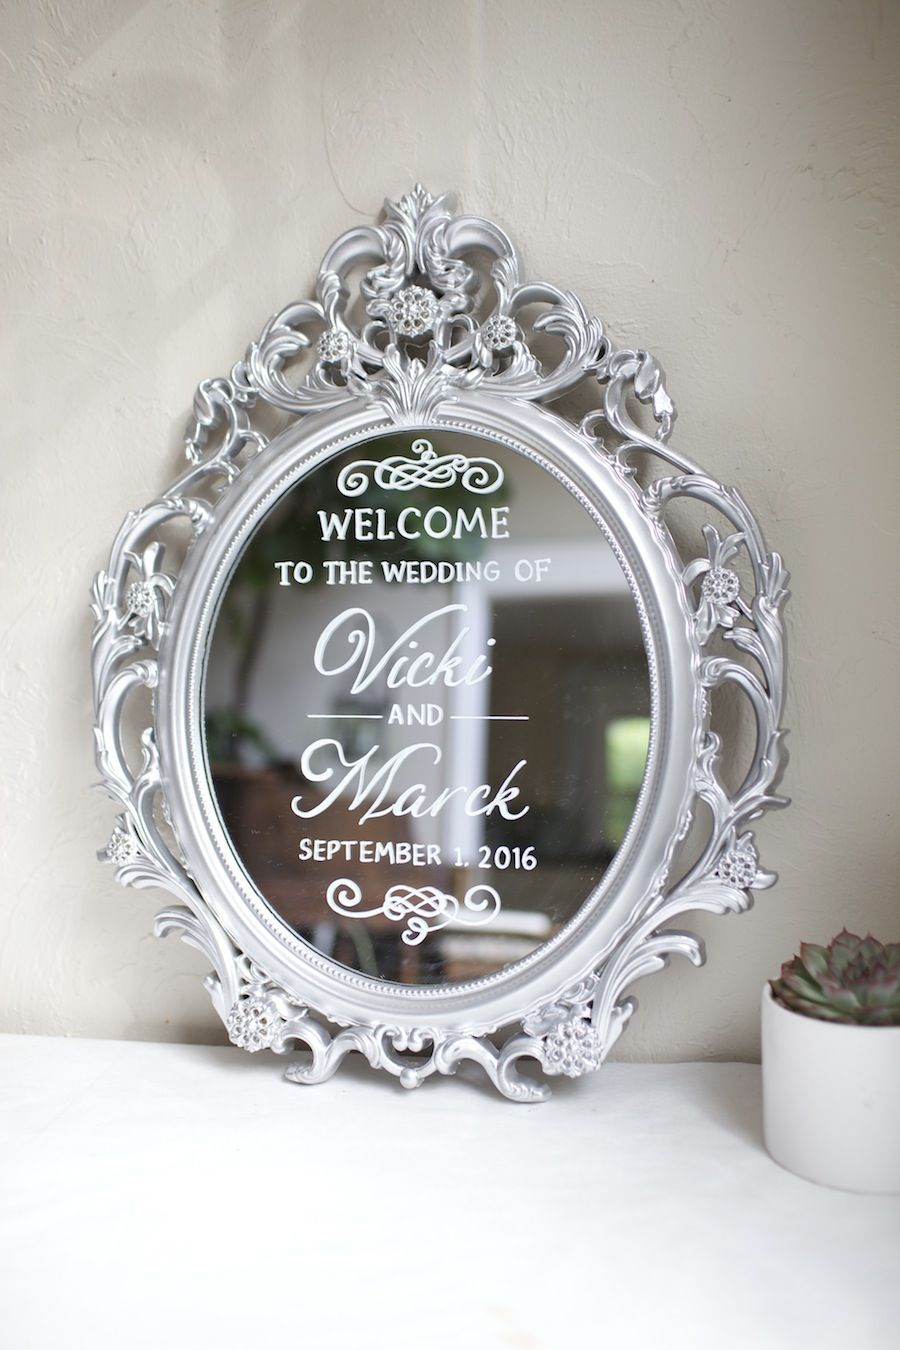 Hand painted wedding on silver ornate mirror